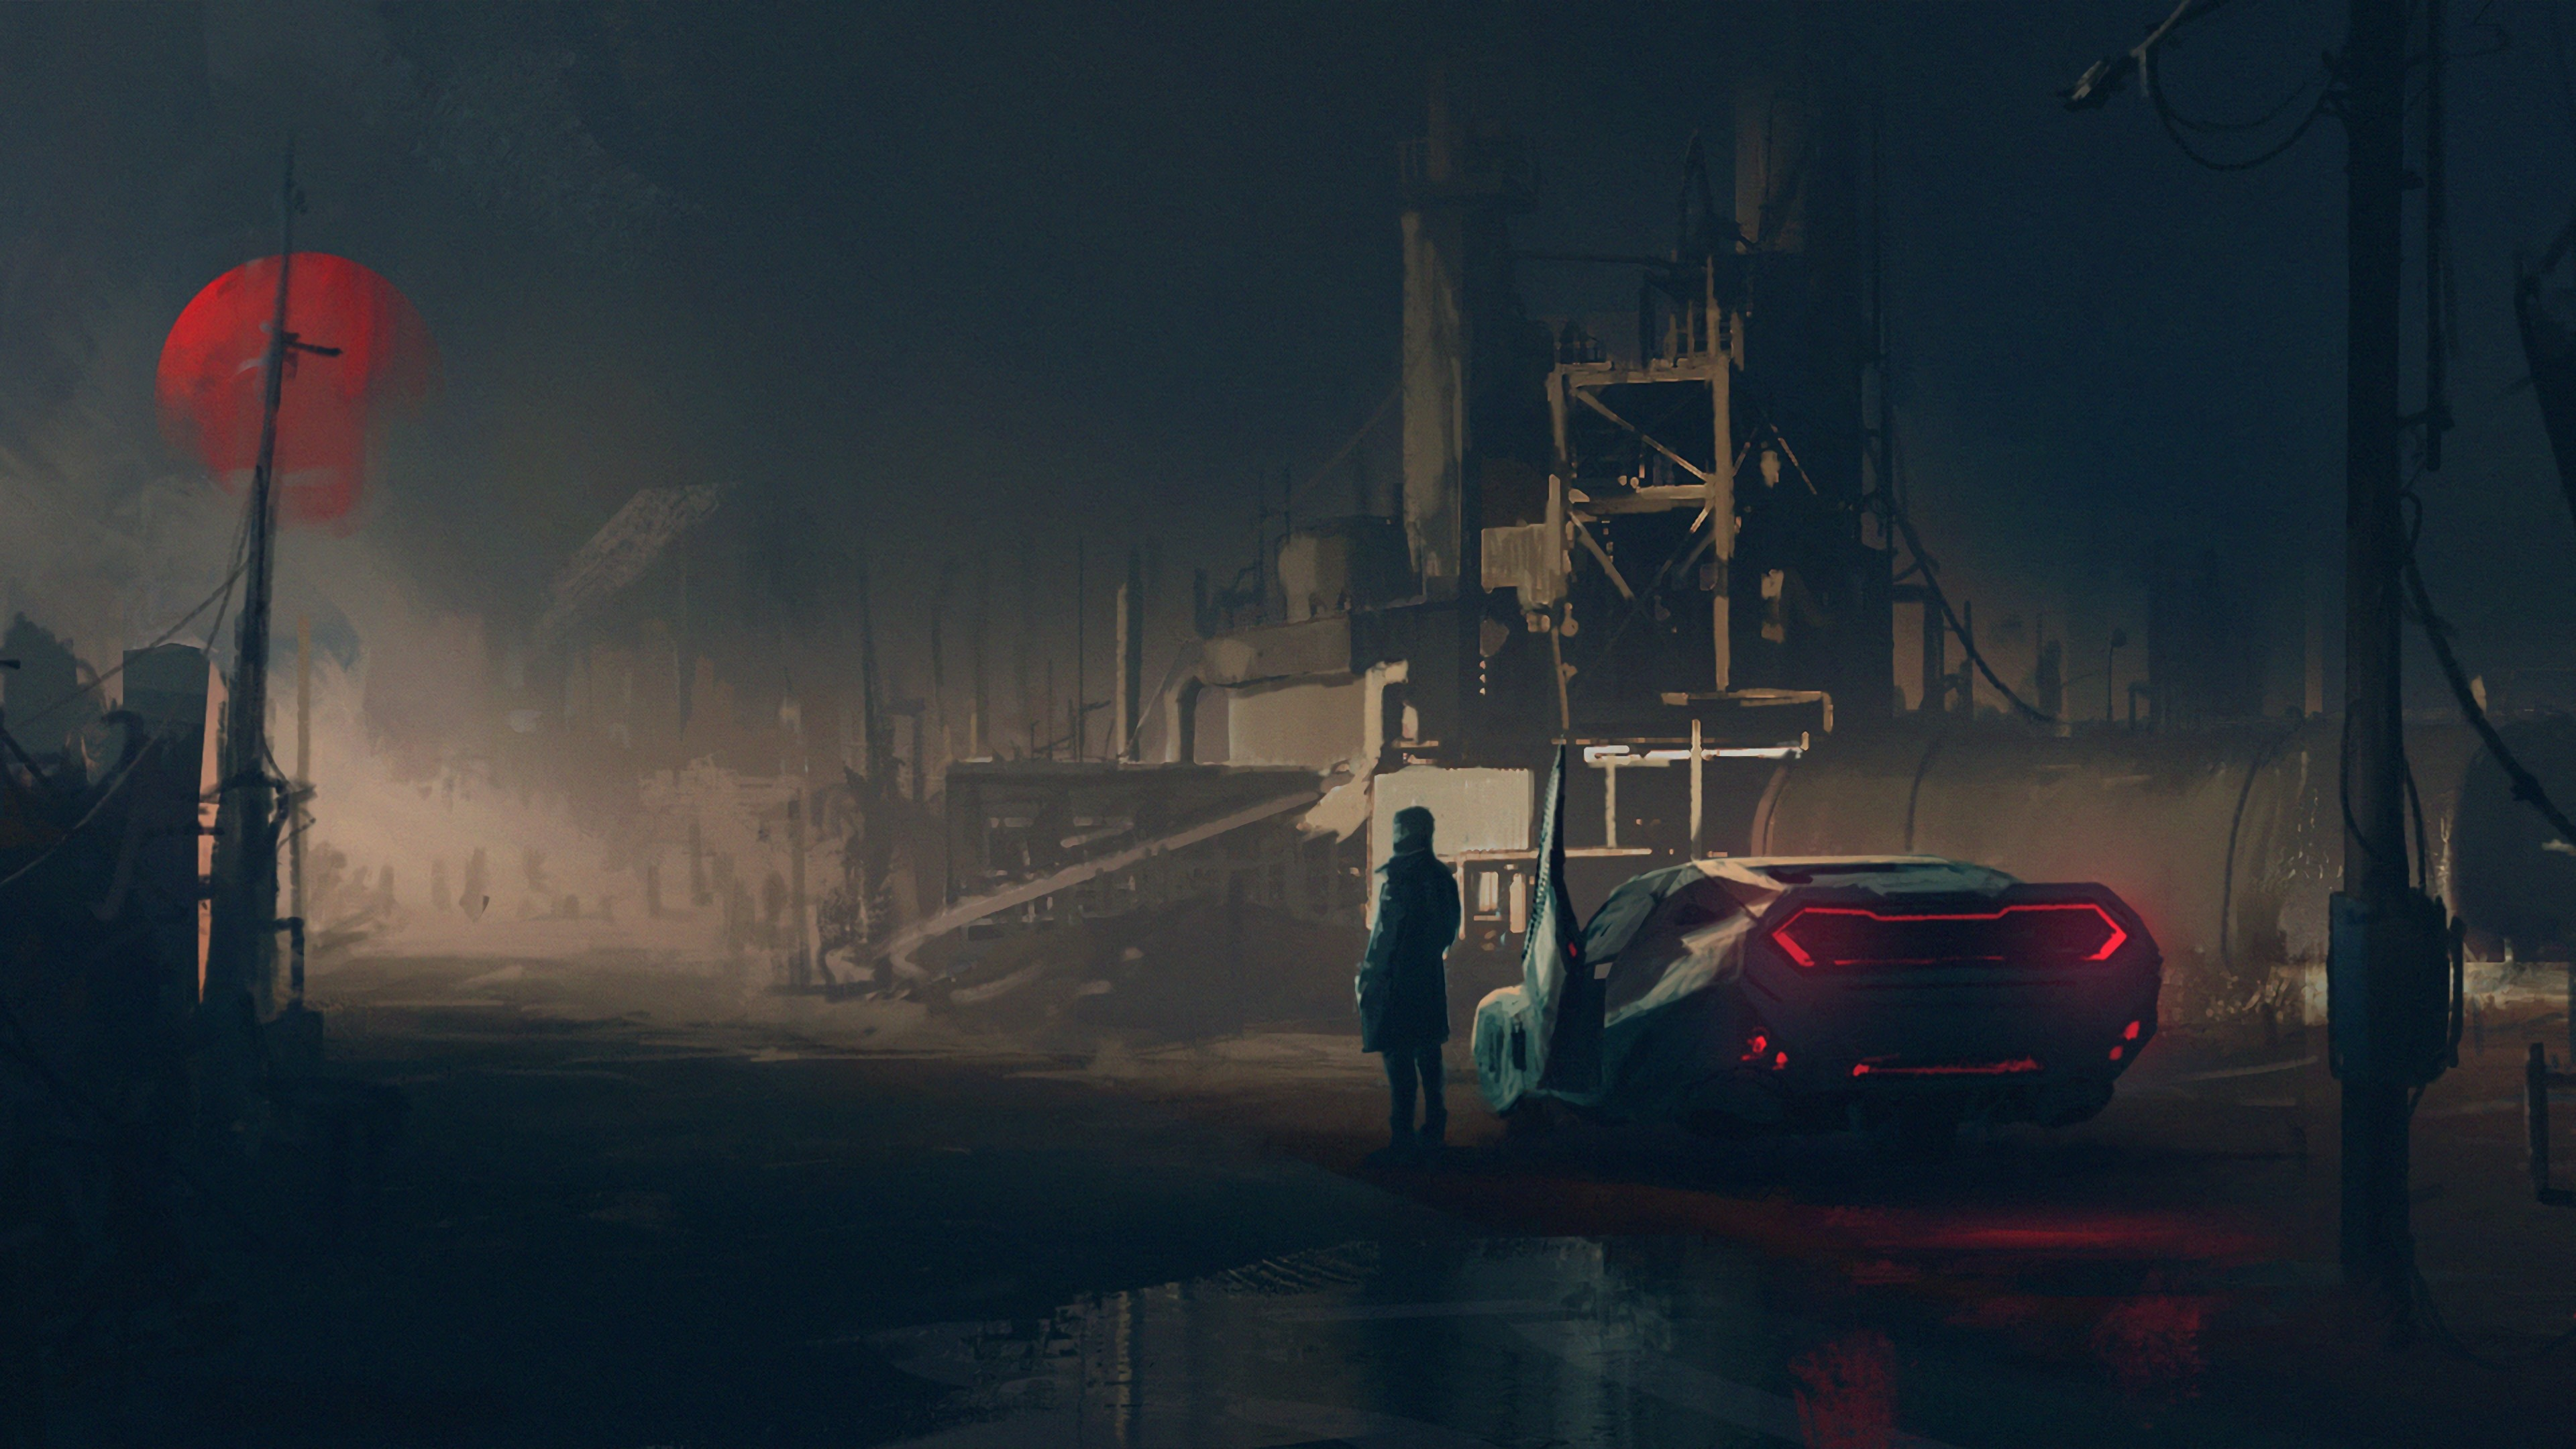 Res: 3840x2160, Blade Runner Wallpapers 5 - 3840 X 2160